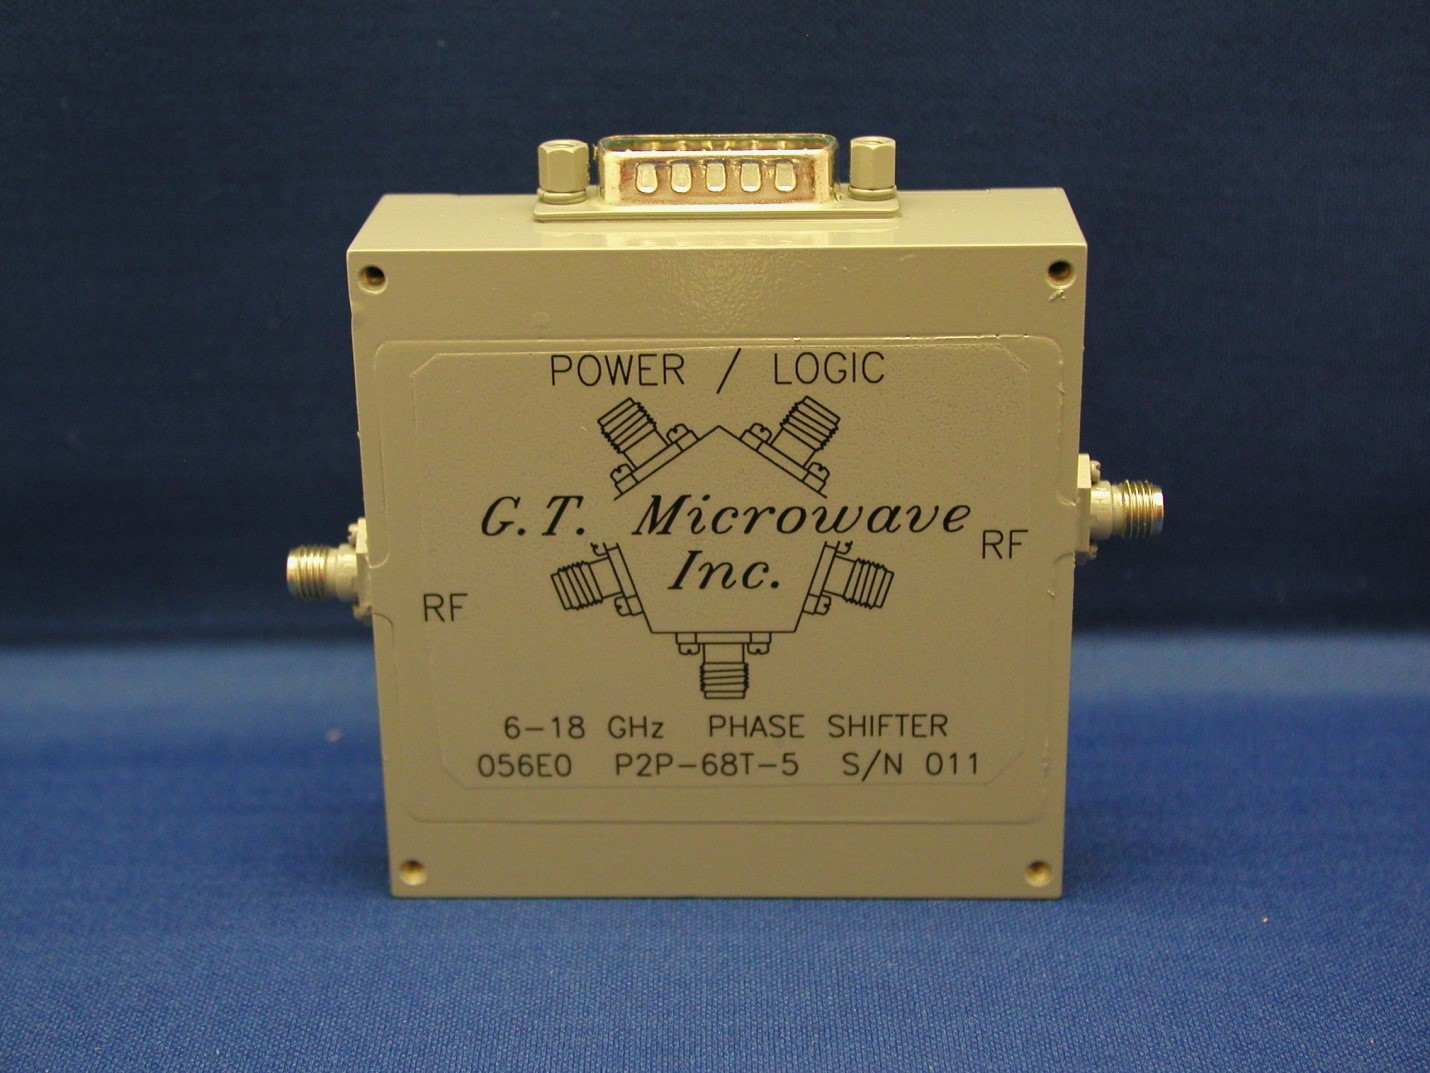 g t microwave inc 6 18 ghz 12 bit phase shifter